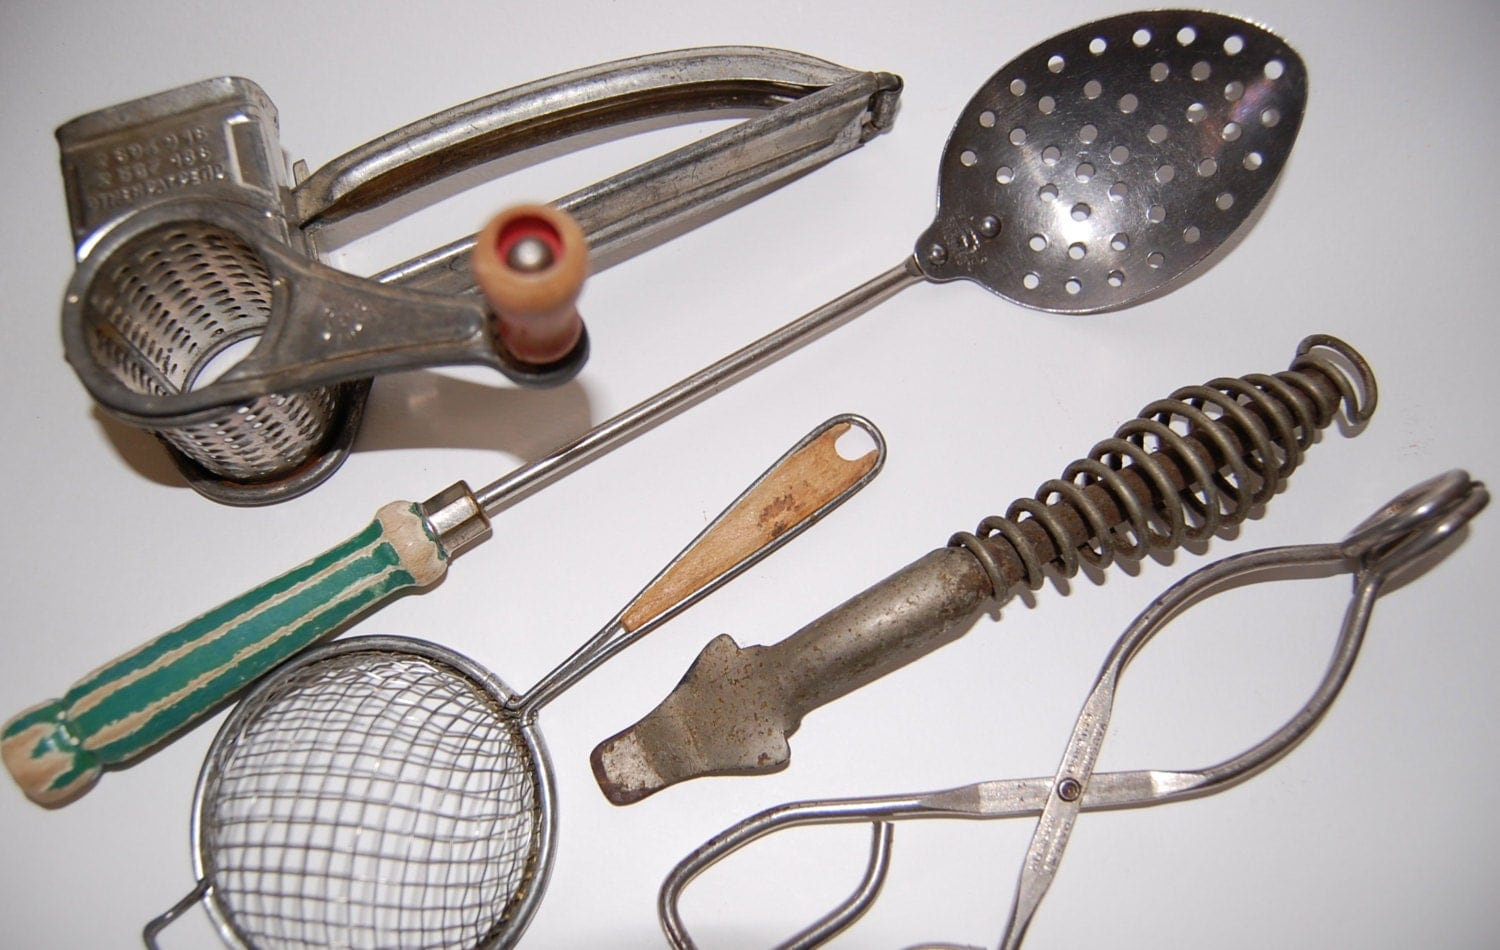 Antique Kitchen Tools ~ Vintage kitchen utensils slotted spoon strainer tongs